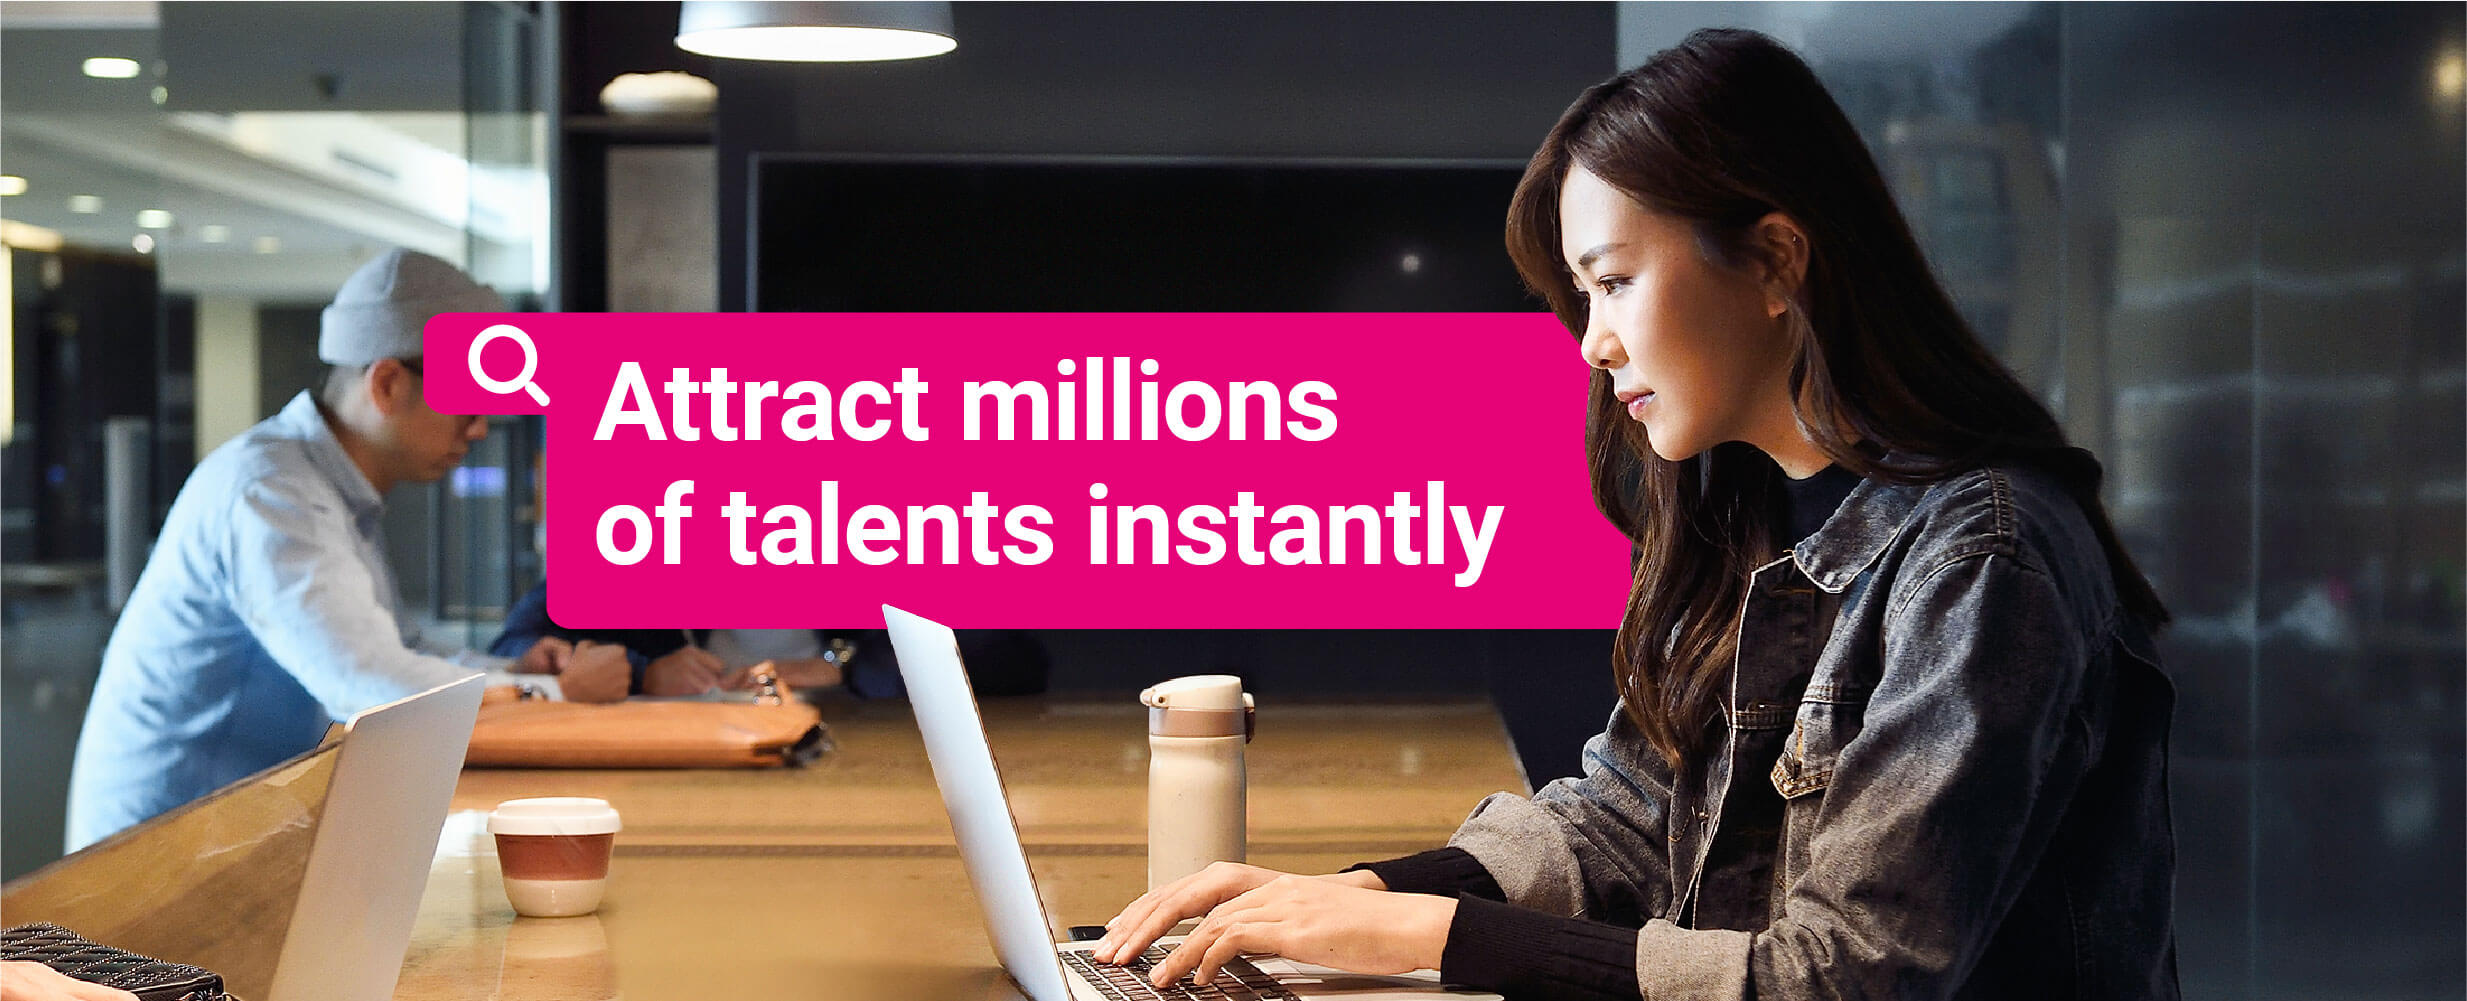 Attract millions of talents instantly